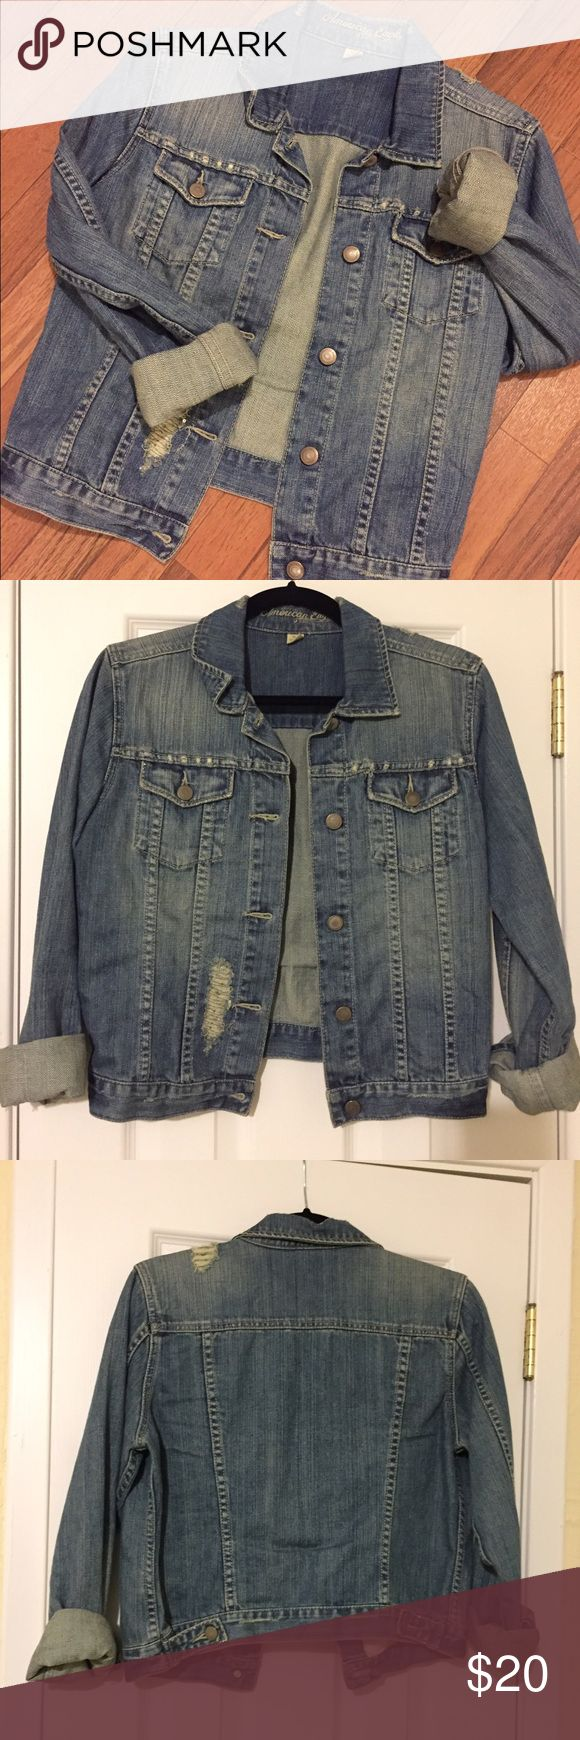 EUC American Eagle Outfitters Jean Jacket Cute distressed jean jacket that has only been worn a few times. It is in great condition--no problems! American Eagle Outfitters Jackets & Coats Jean Jackets